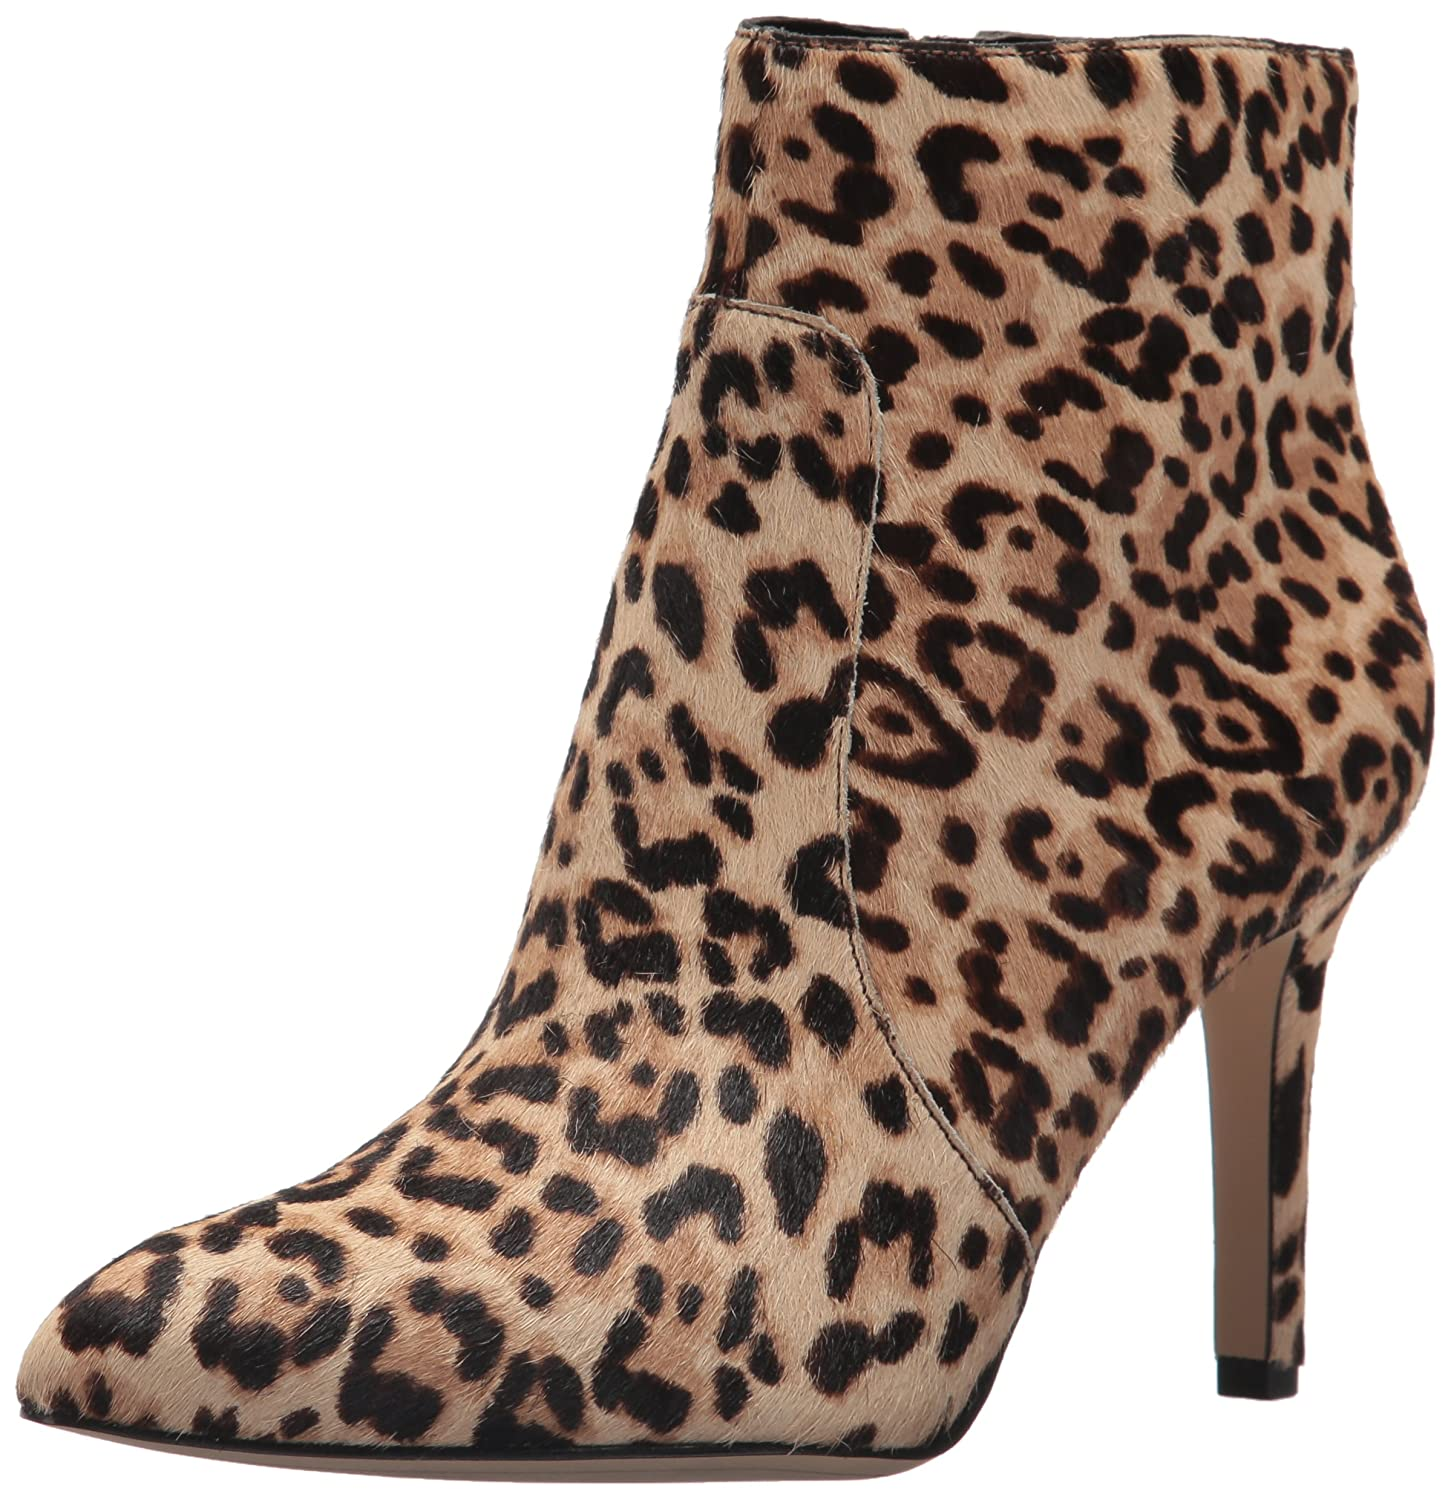 Sam Edelman Women's Olette Fashion Boot B071Y69BTB 8 B(M) US|Sand Leopard